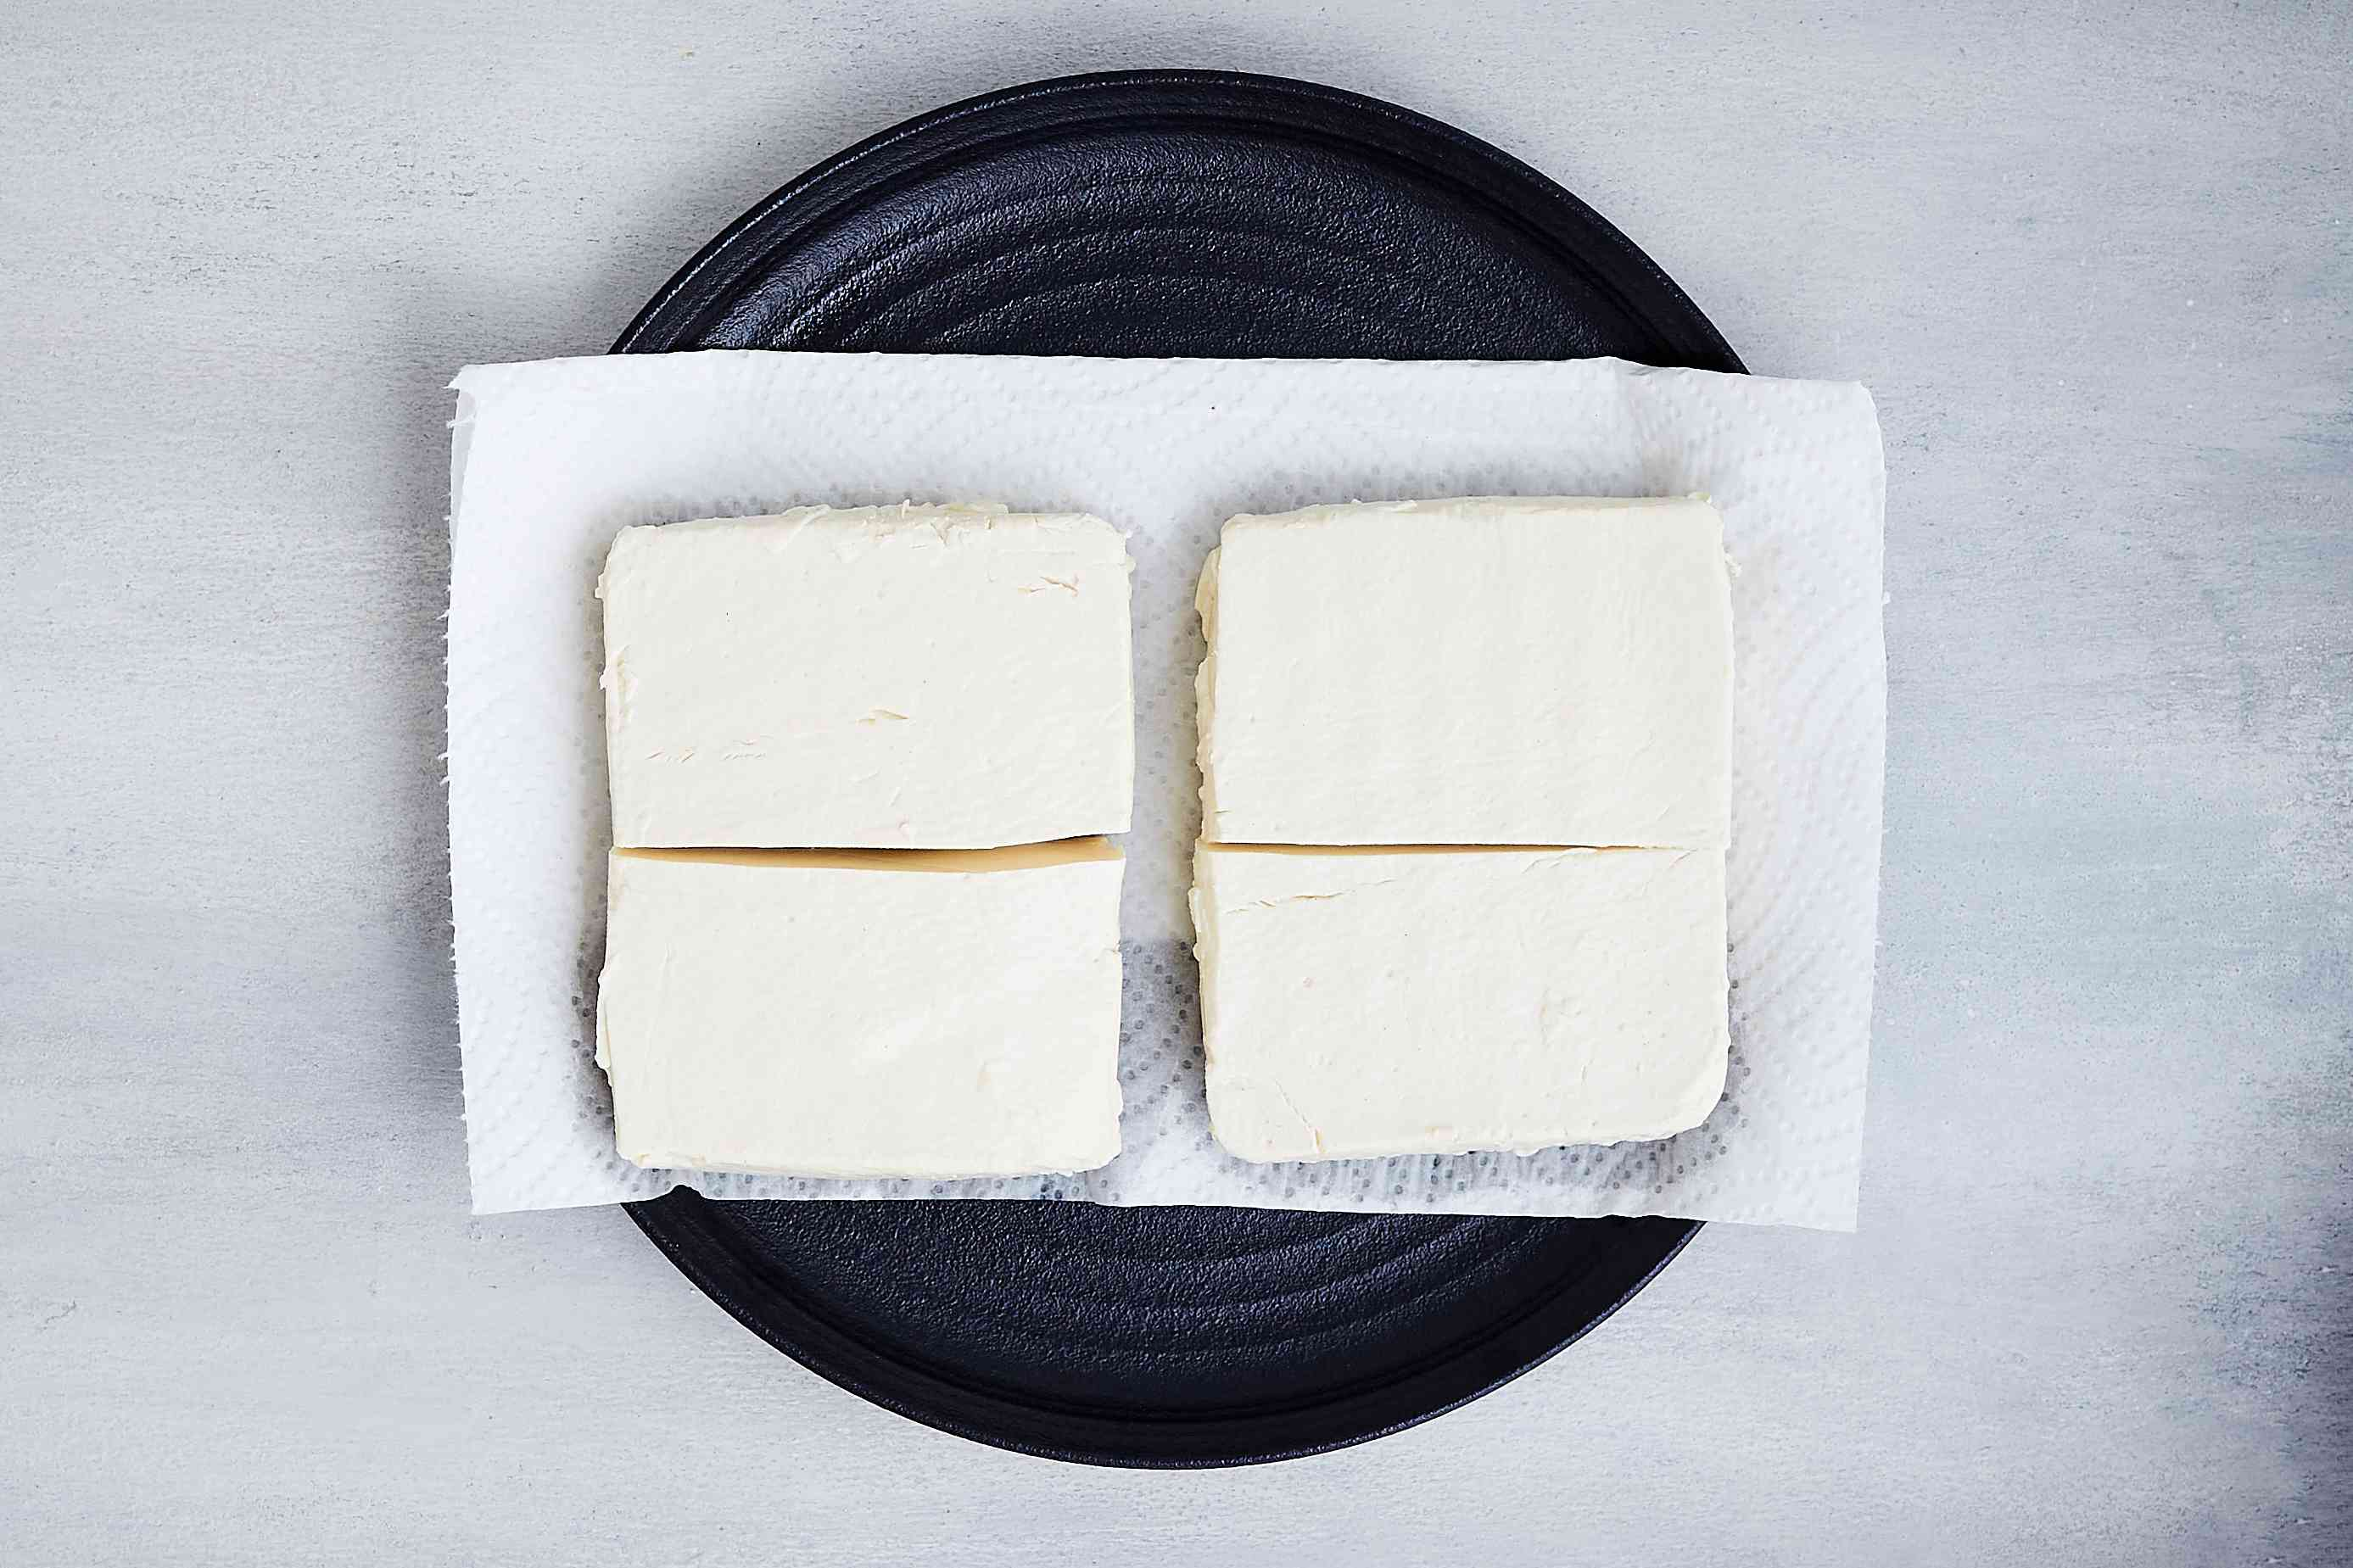 tofu on top of paper towels